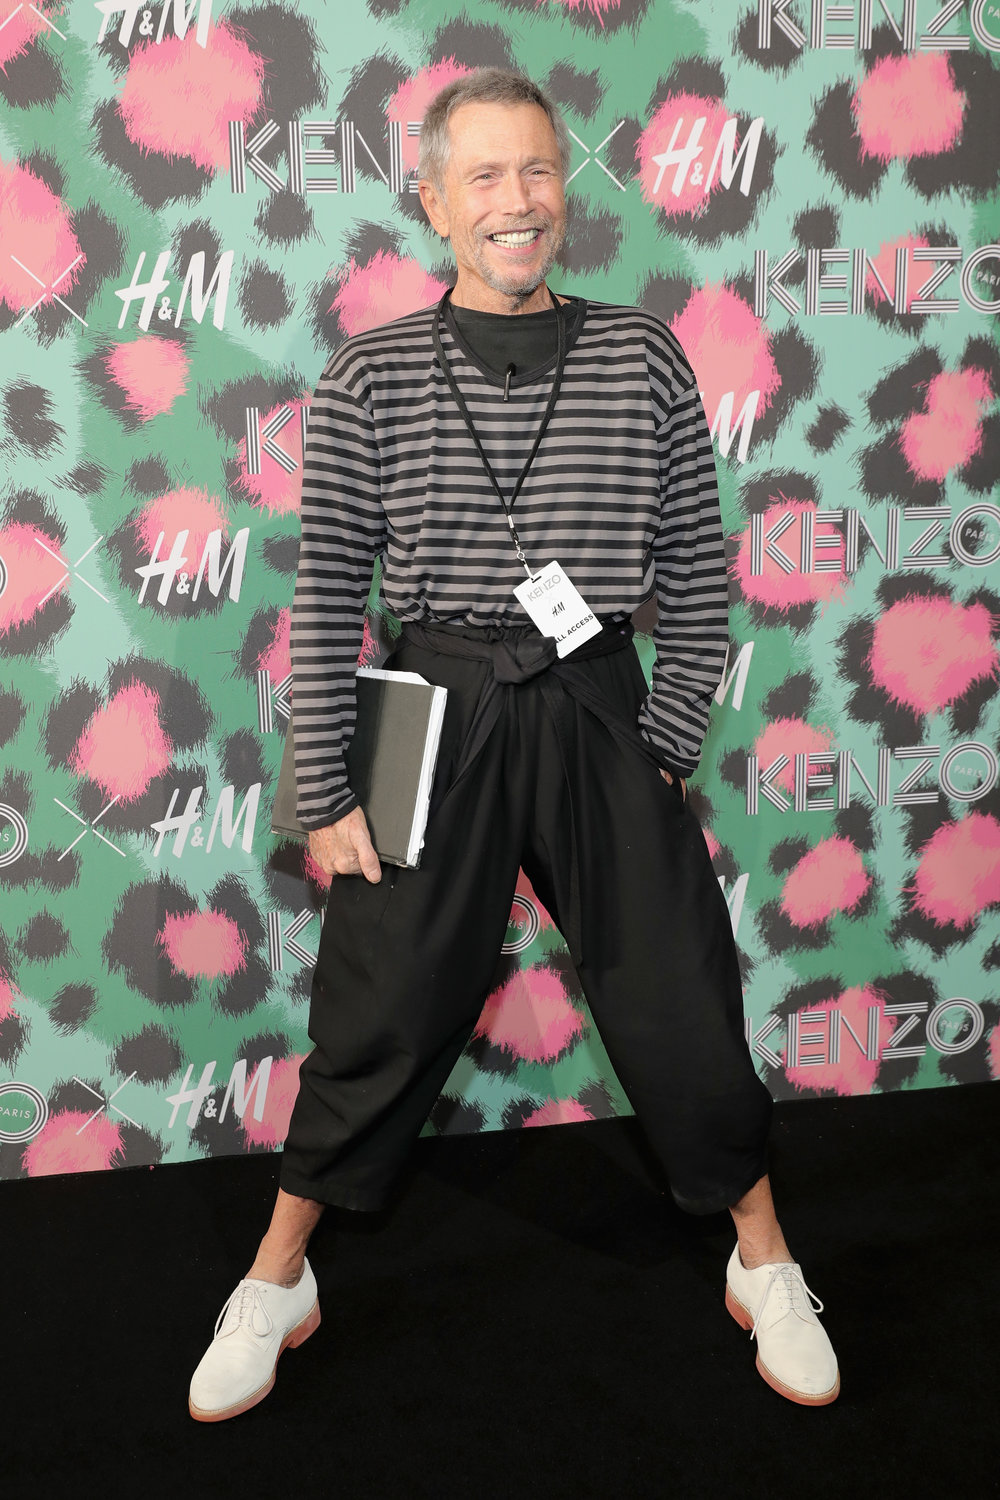 NEW YORK, NY - OCTOBER 19: Jean-Paul Goude attends KENZO x H&M Launch Event Directed By Jean-Paul Goude'  at Pier 36 on October 19, 2016 in New York City.  (Photo by Neilson Barnard/Getty Images for H&M)